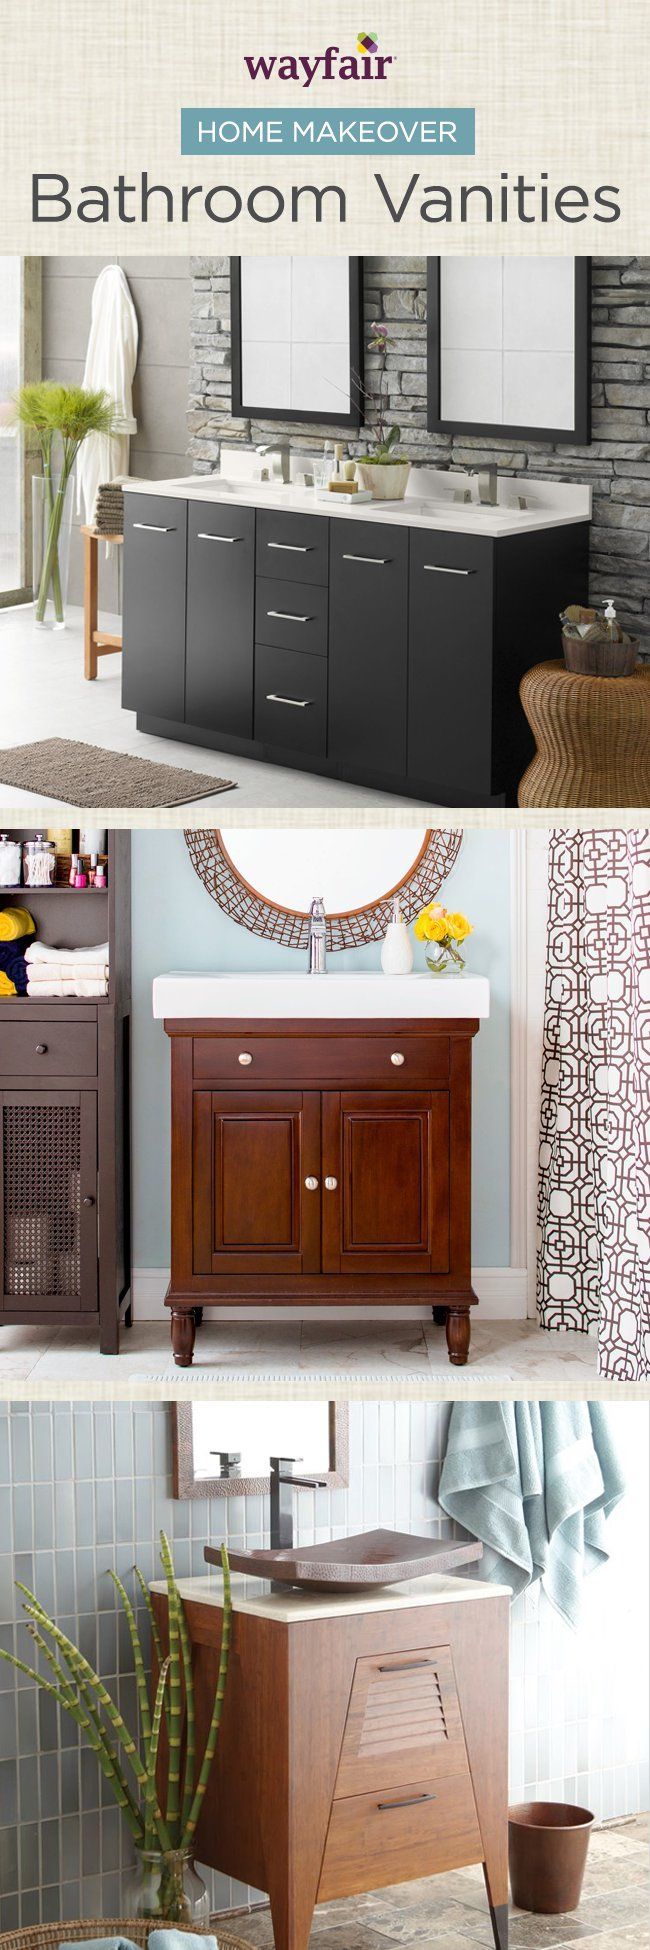 Purchasing a bathroom vanity for your home can help you redesign your bathroom space. There are many different types of bathroom vanities, including single vanities that are perfect for a small bathroom. Visit Wayfair and sign up today to get access to exclusive deals everyday up to 70% off. Free shipping on all orders over $49.